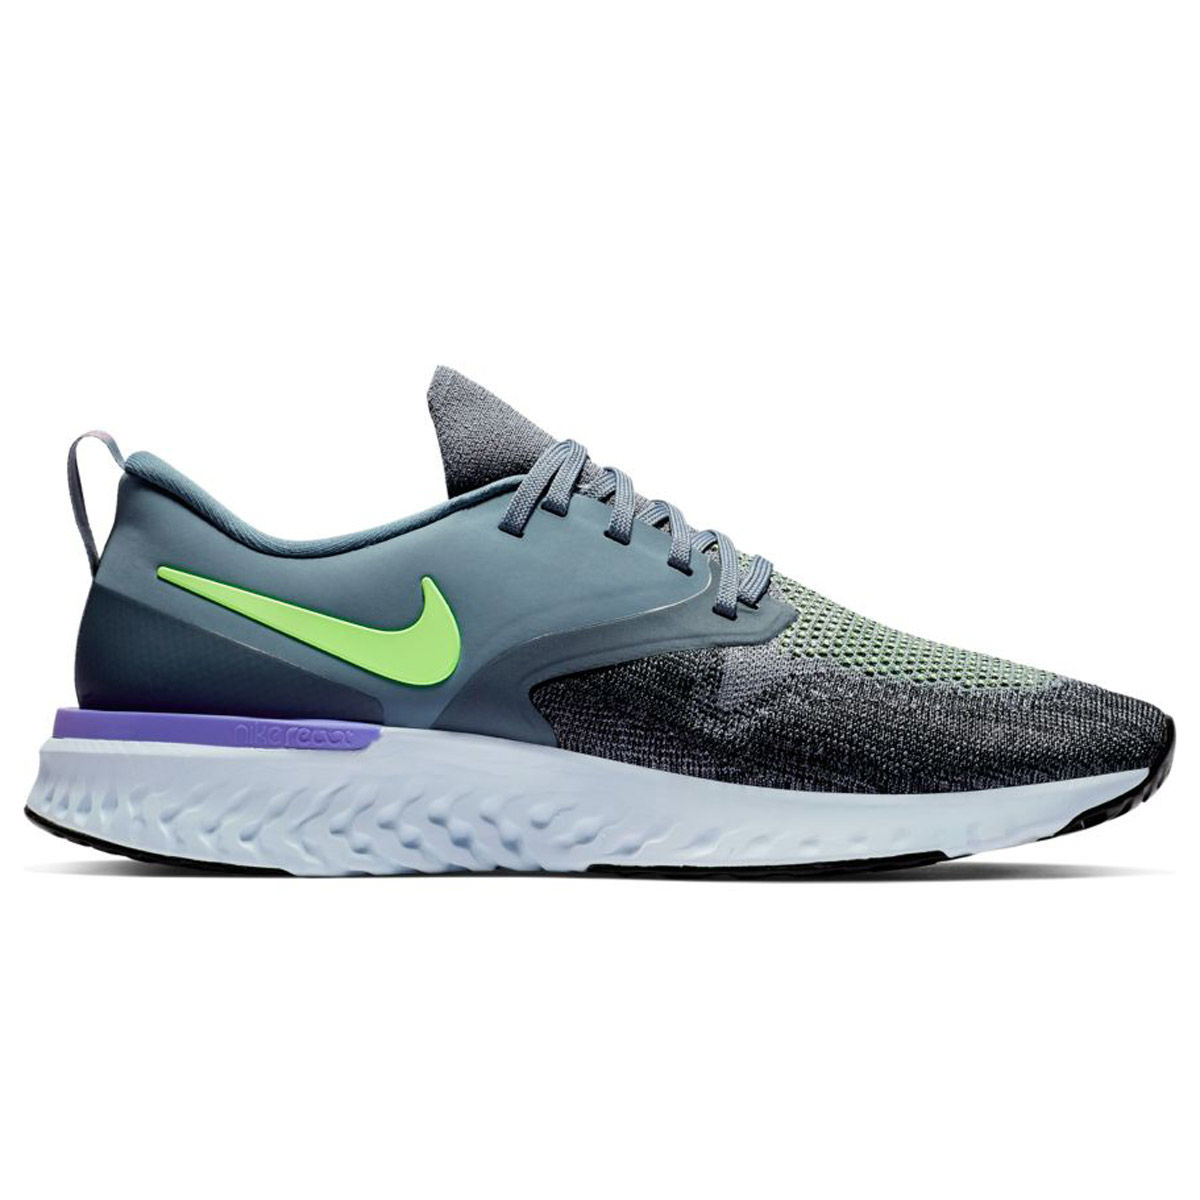 Nike Odyssey React 2 Flyknit Mens Running Shoe